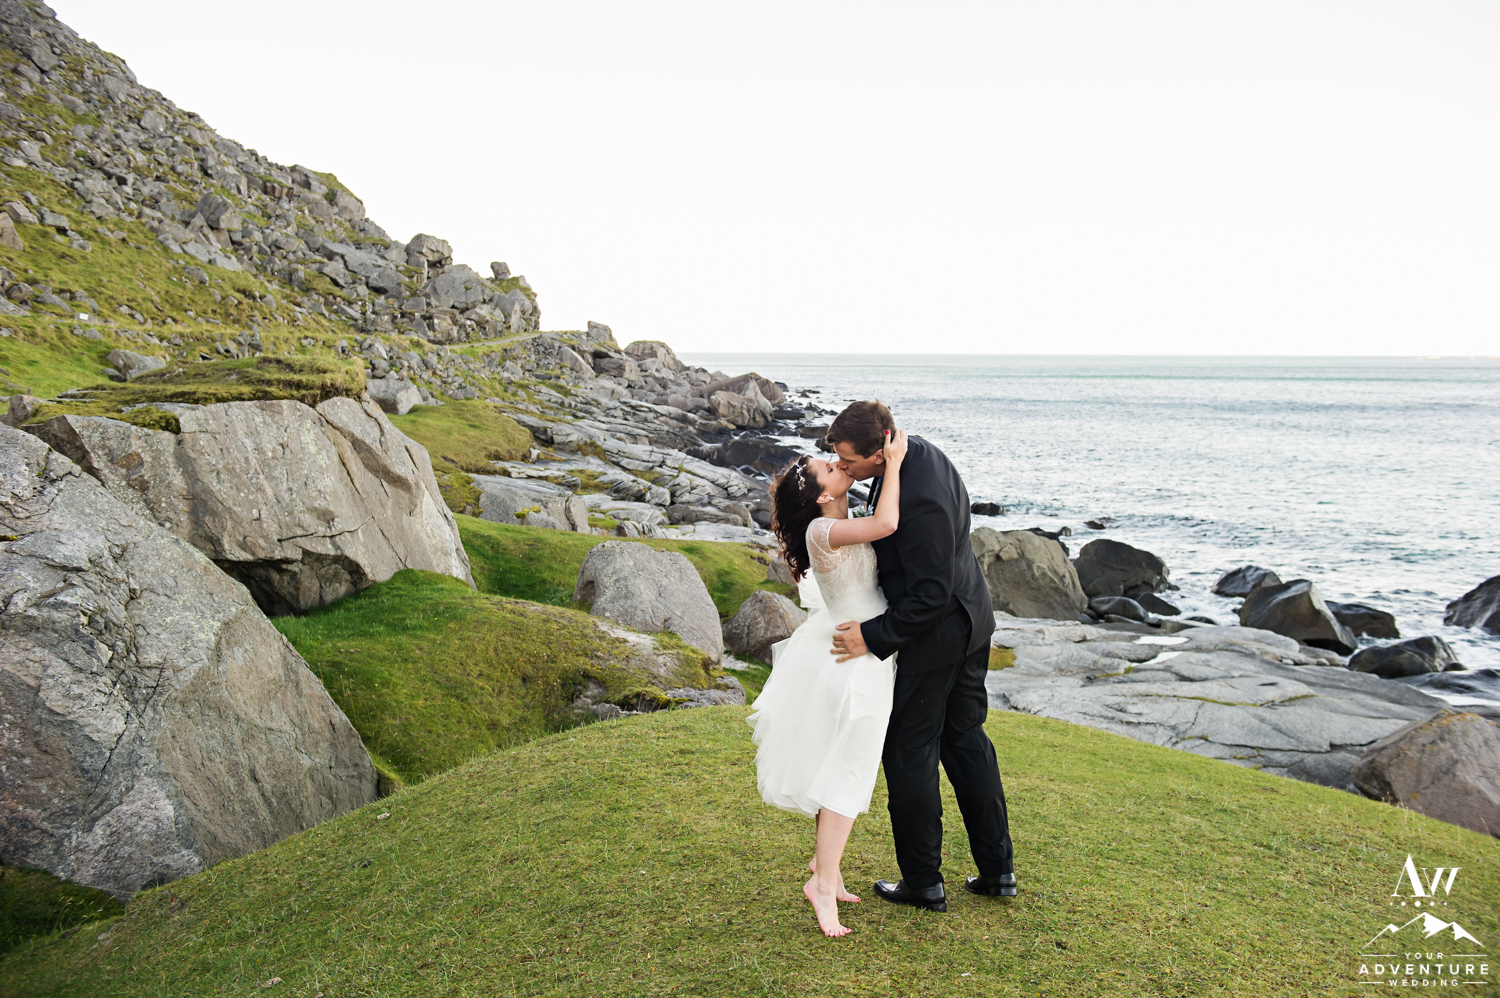 lofoten-islands-wedding-photos-your-adventure-wedding-42